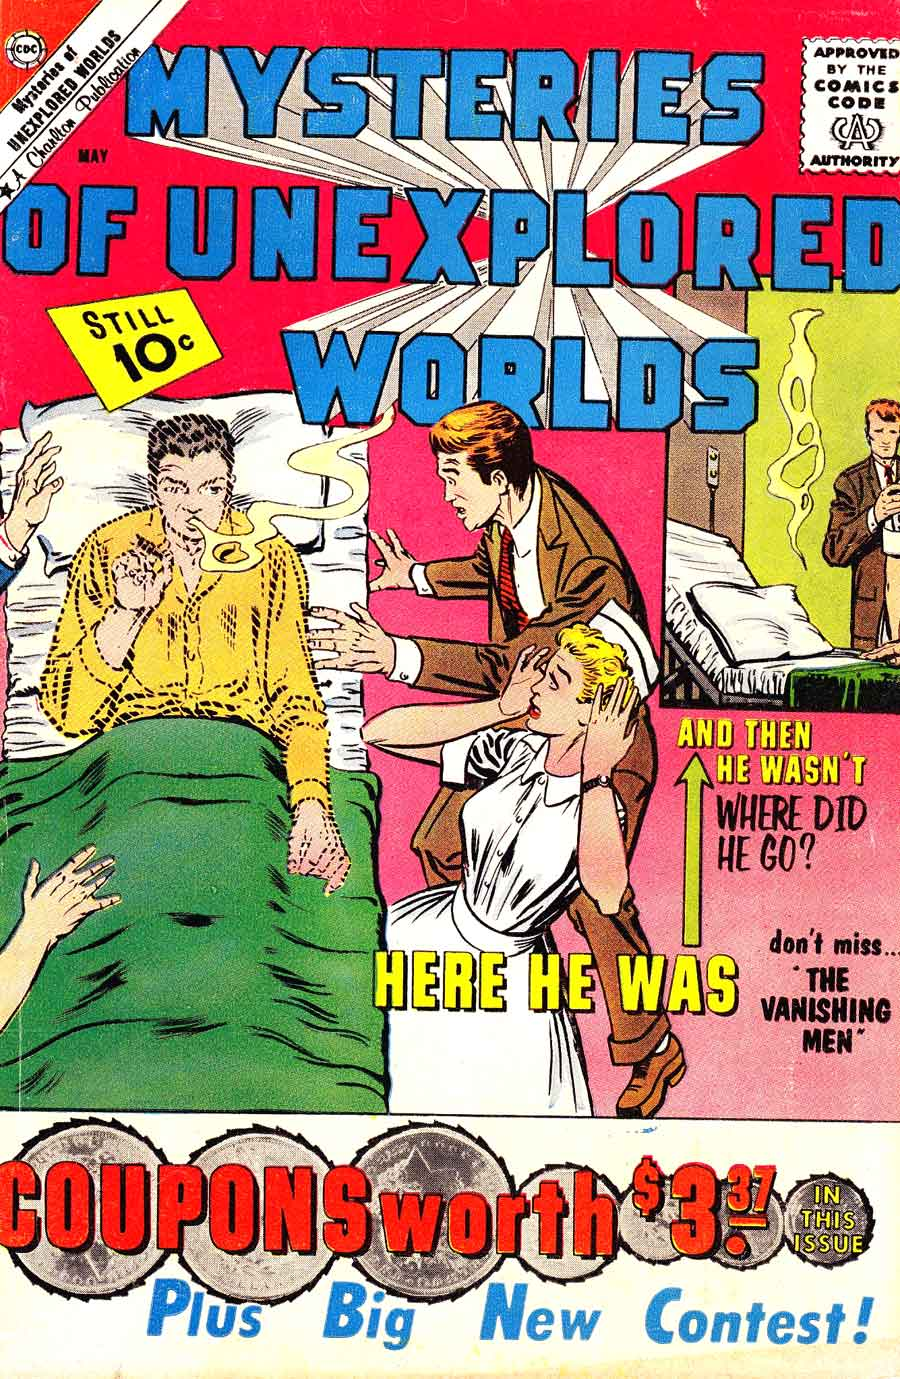 Mysteries of Unexplored Worlds v1 #24 charlton comic book cover art by Steve Ditko